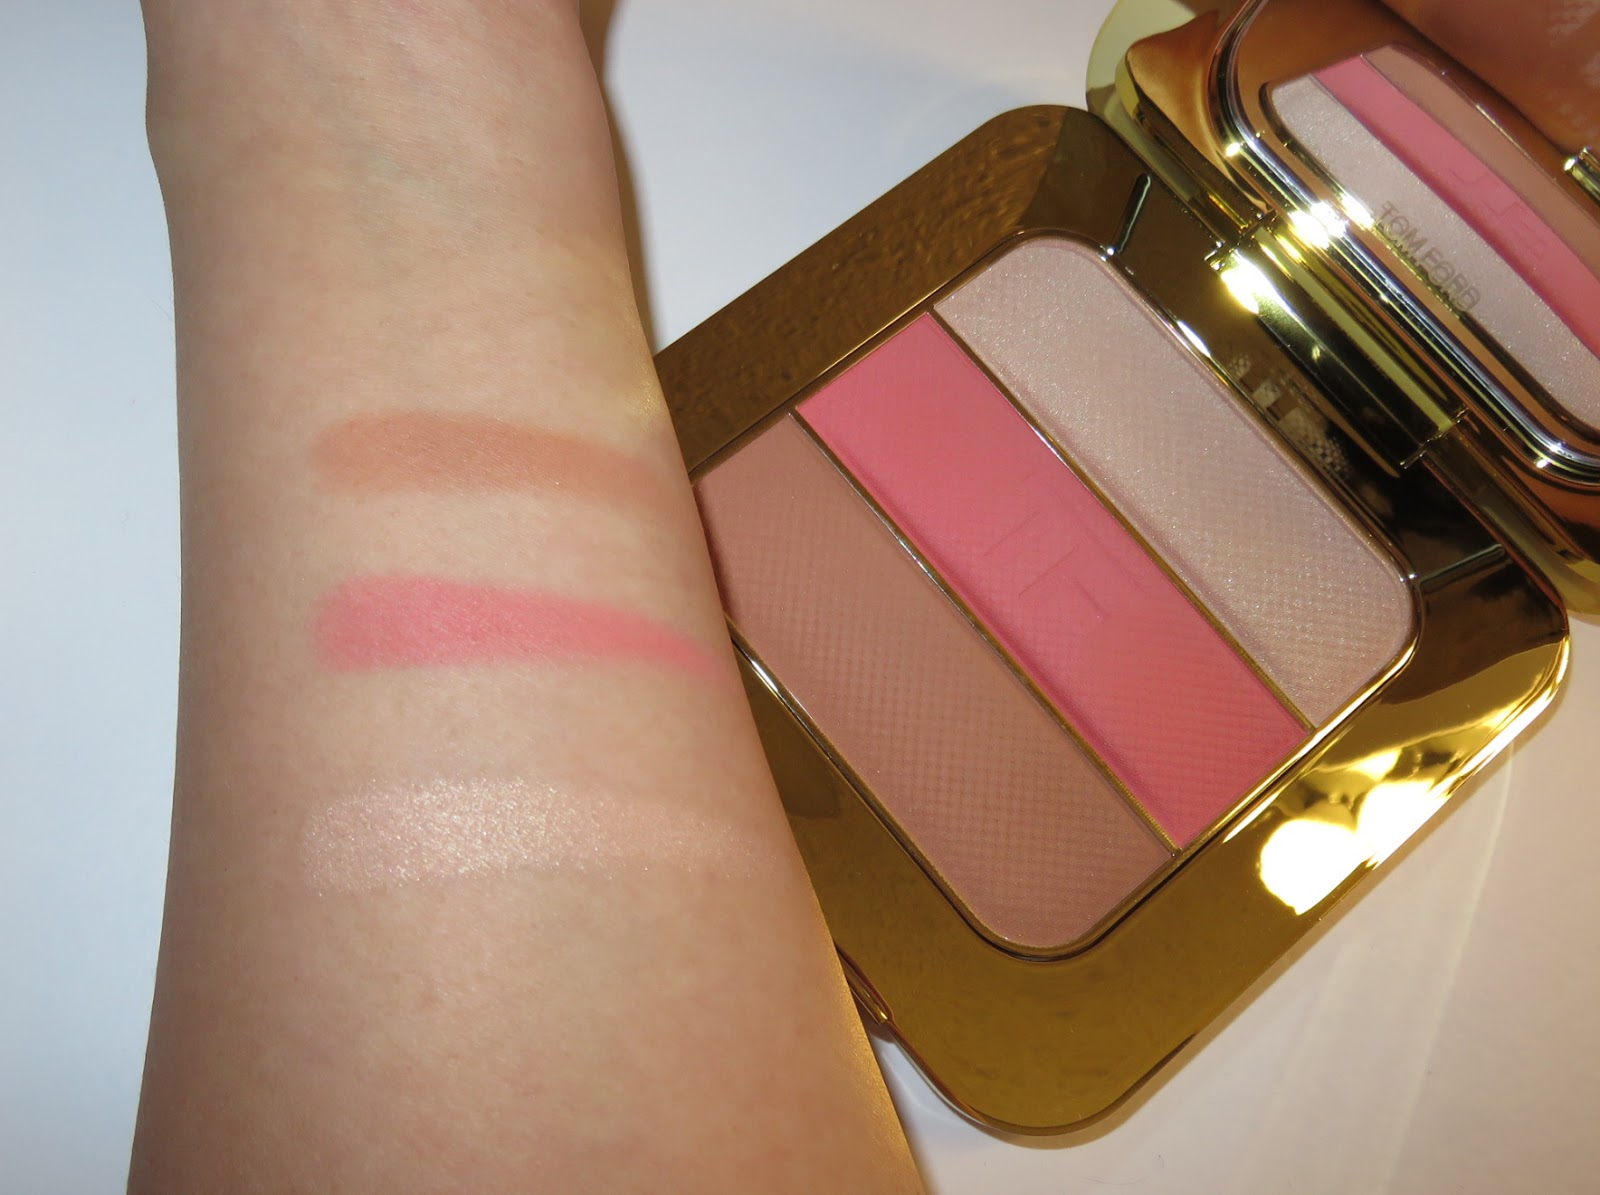 review tom ford soleil contouring palette in the. Black Bedroom Furniture Sets. Home Design Ideas